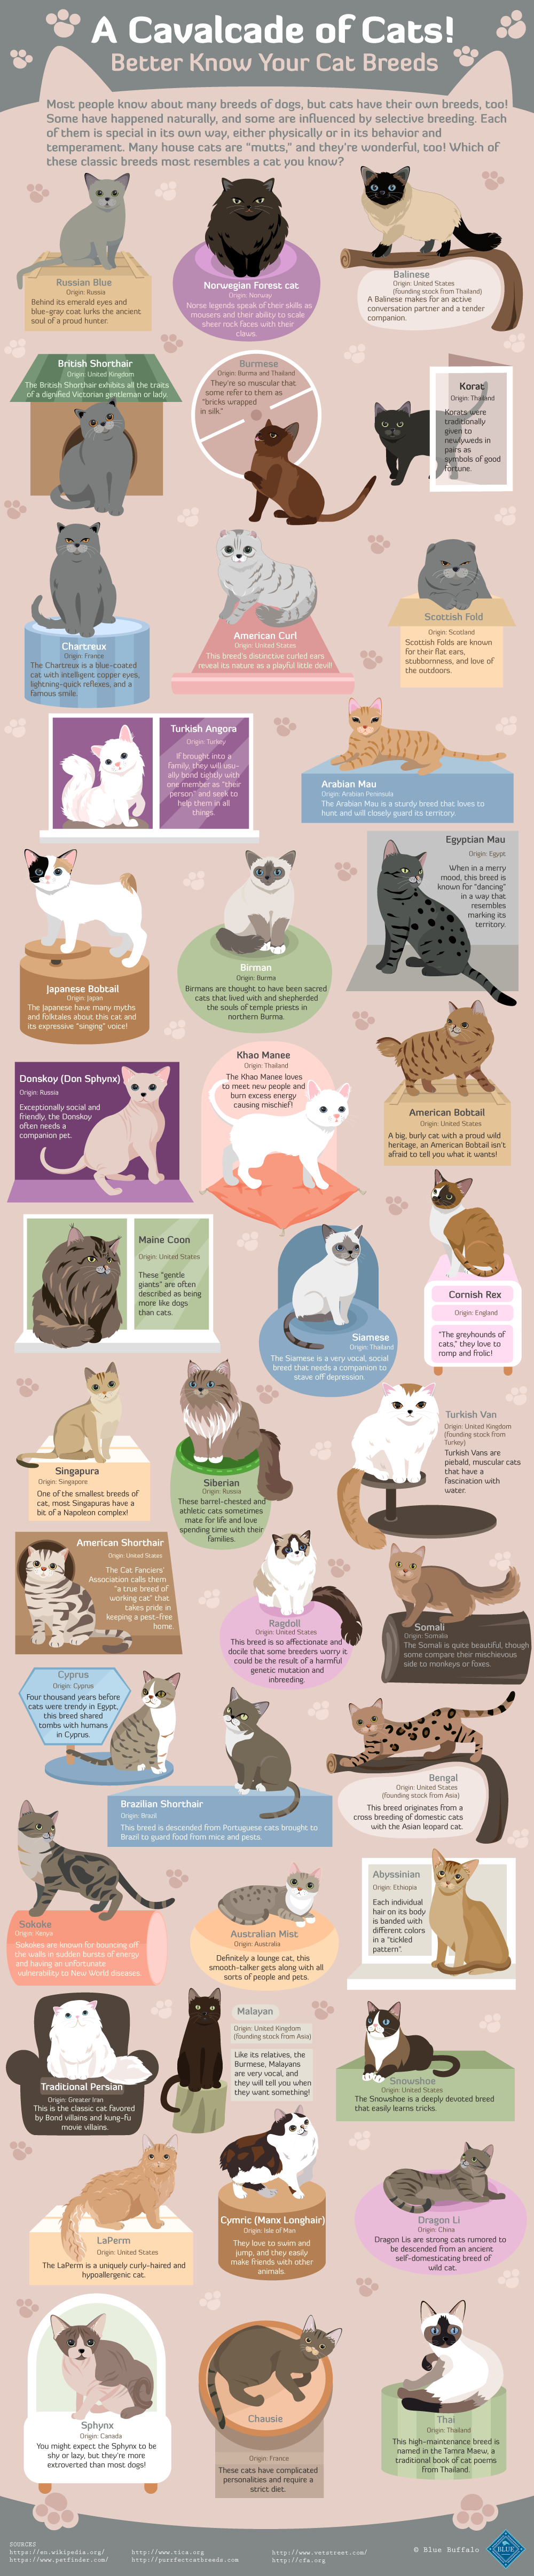 A Cavalcade of Cats: the many breeds of cats, their origins, and quick cat facts